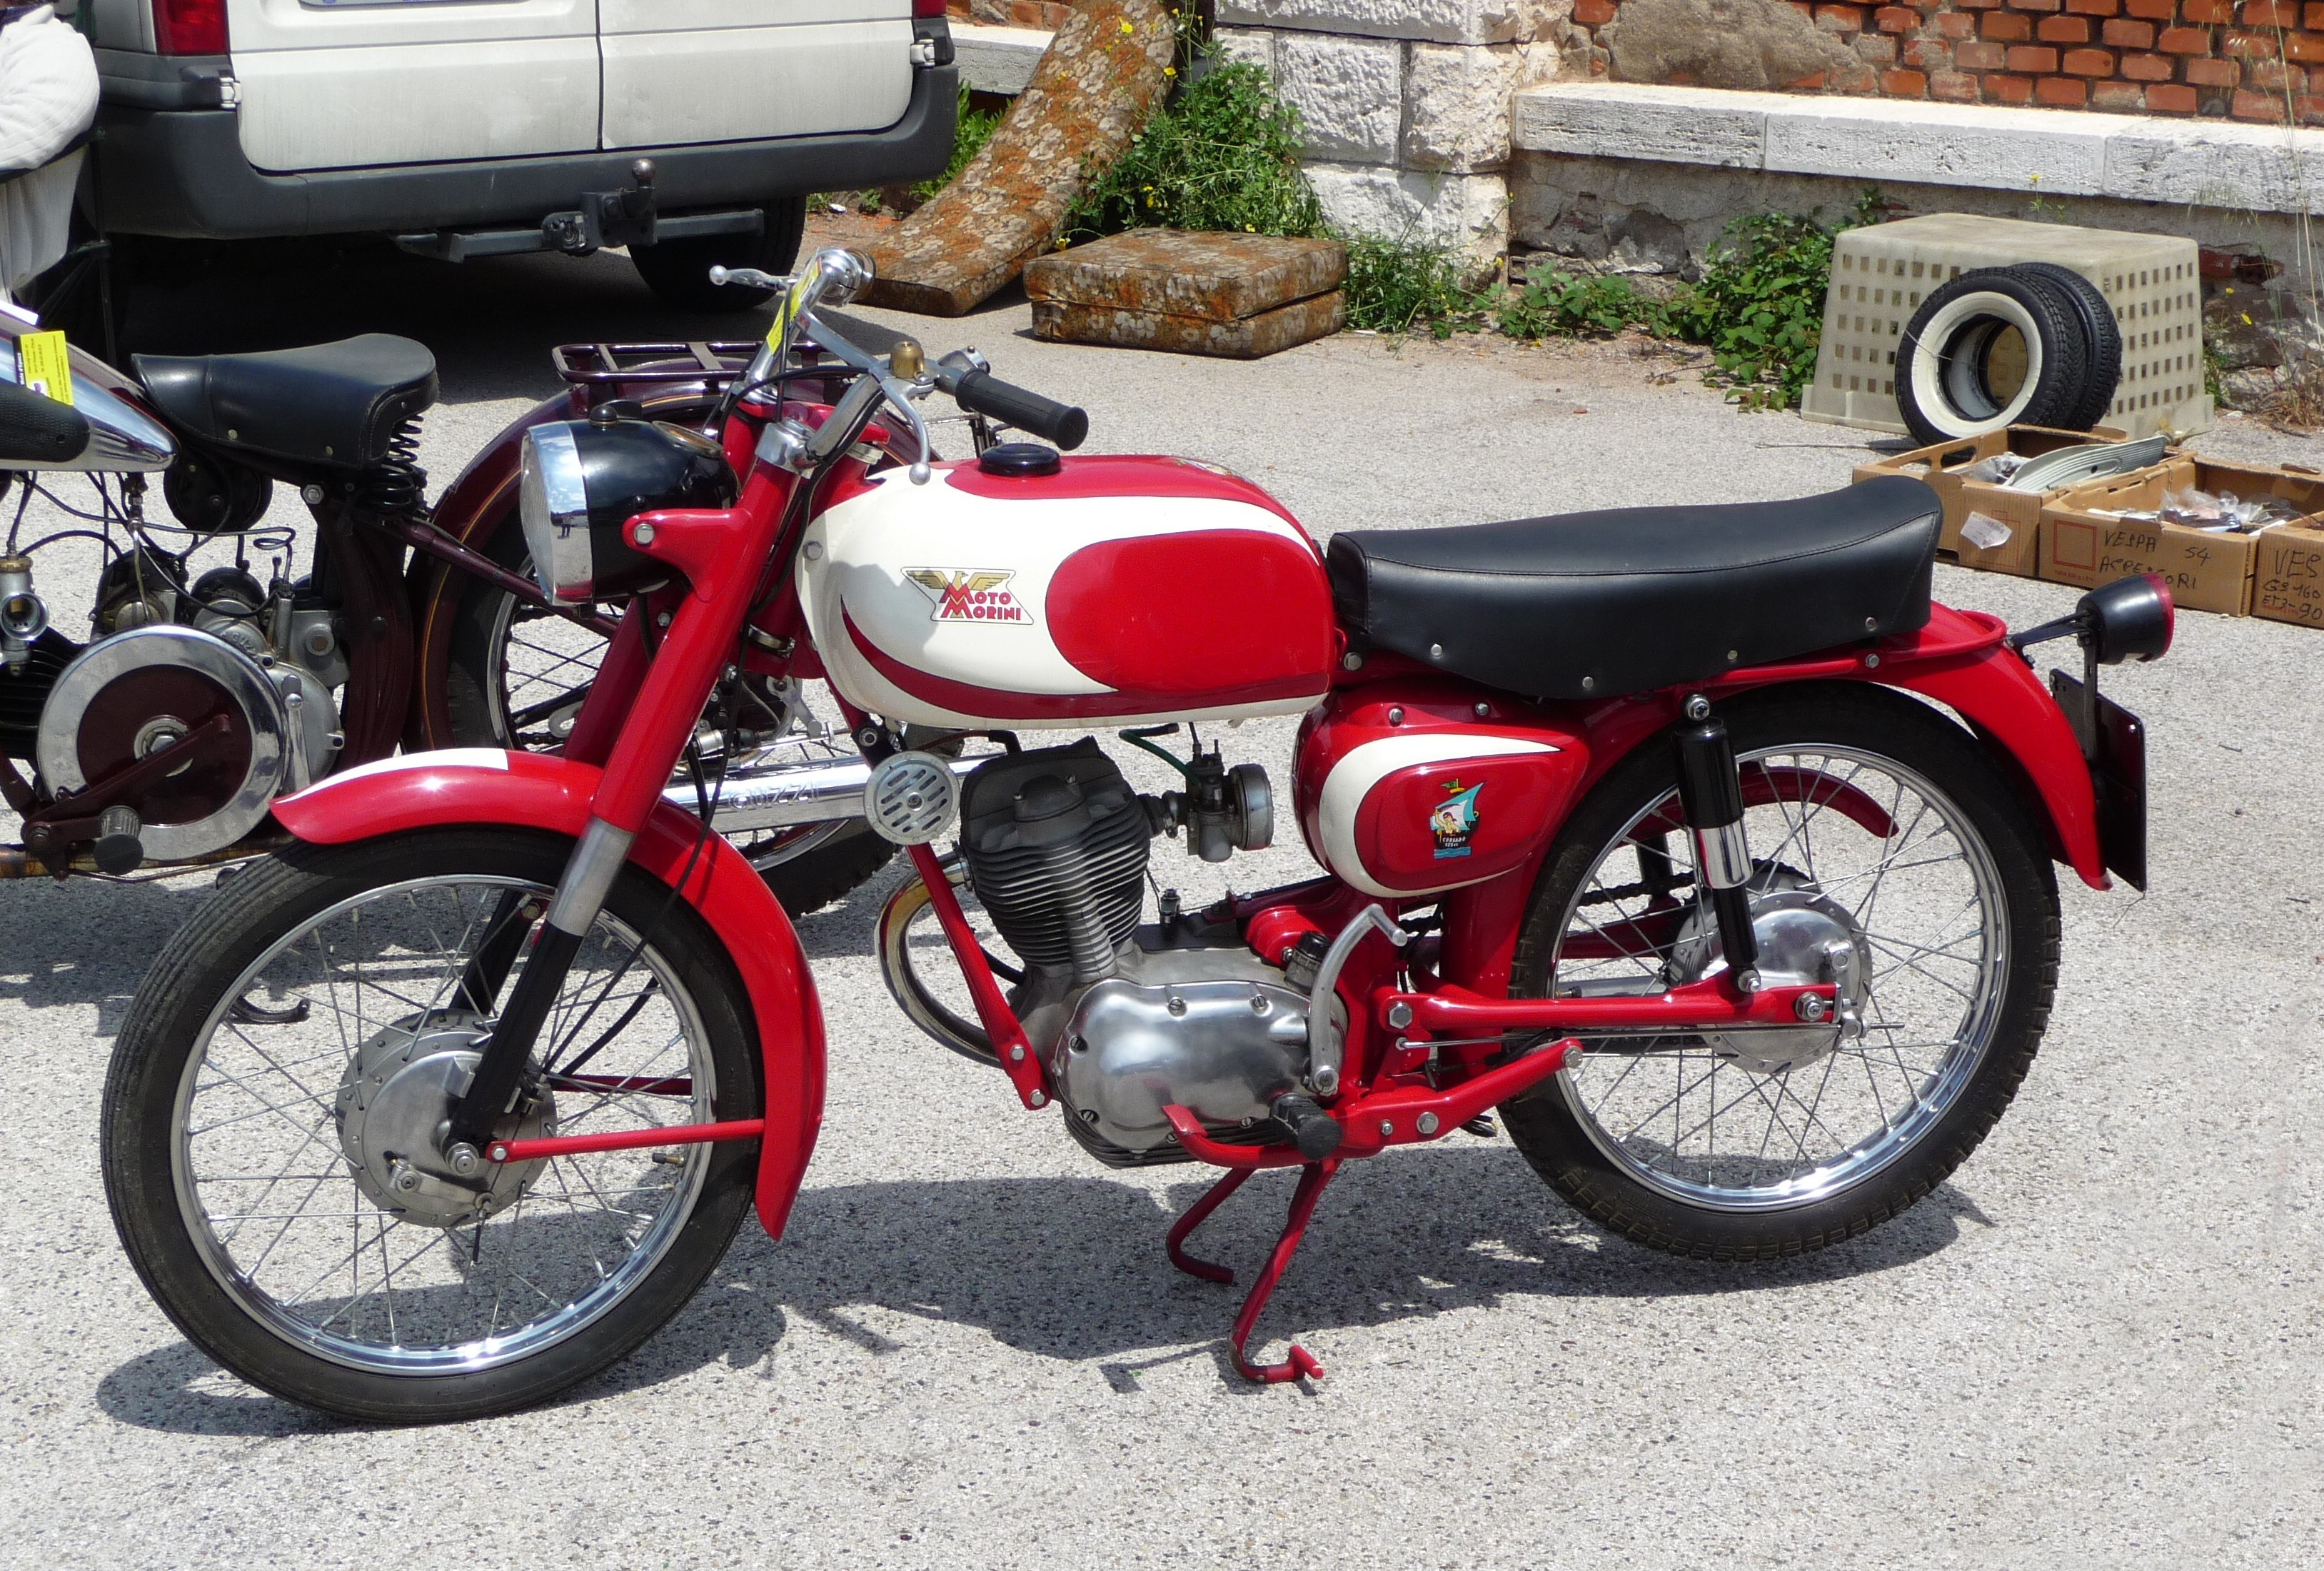 Moto morini corsaro photo - 1